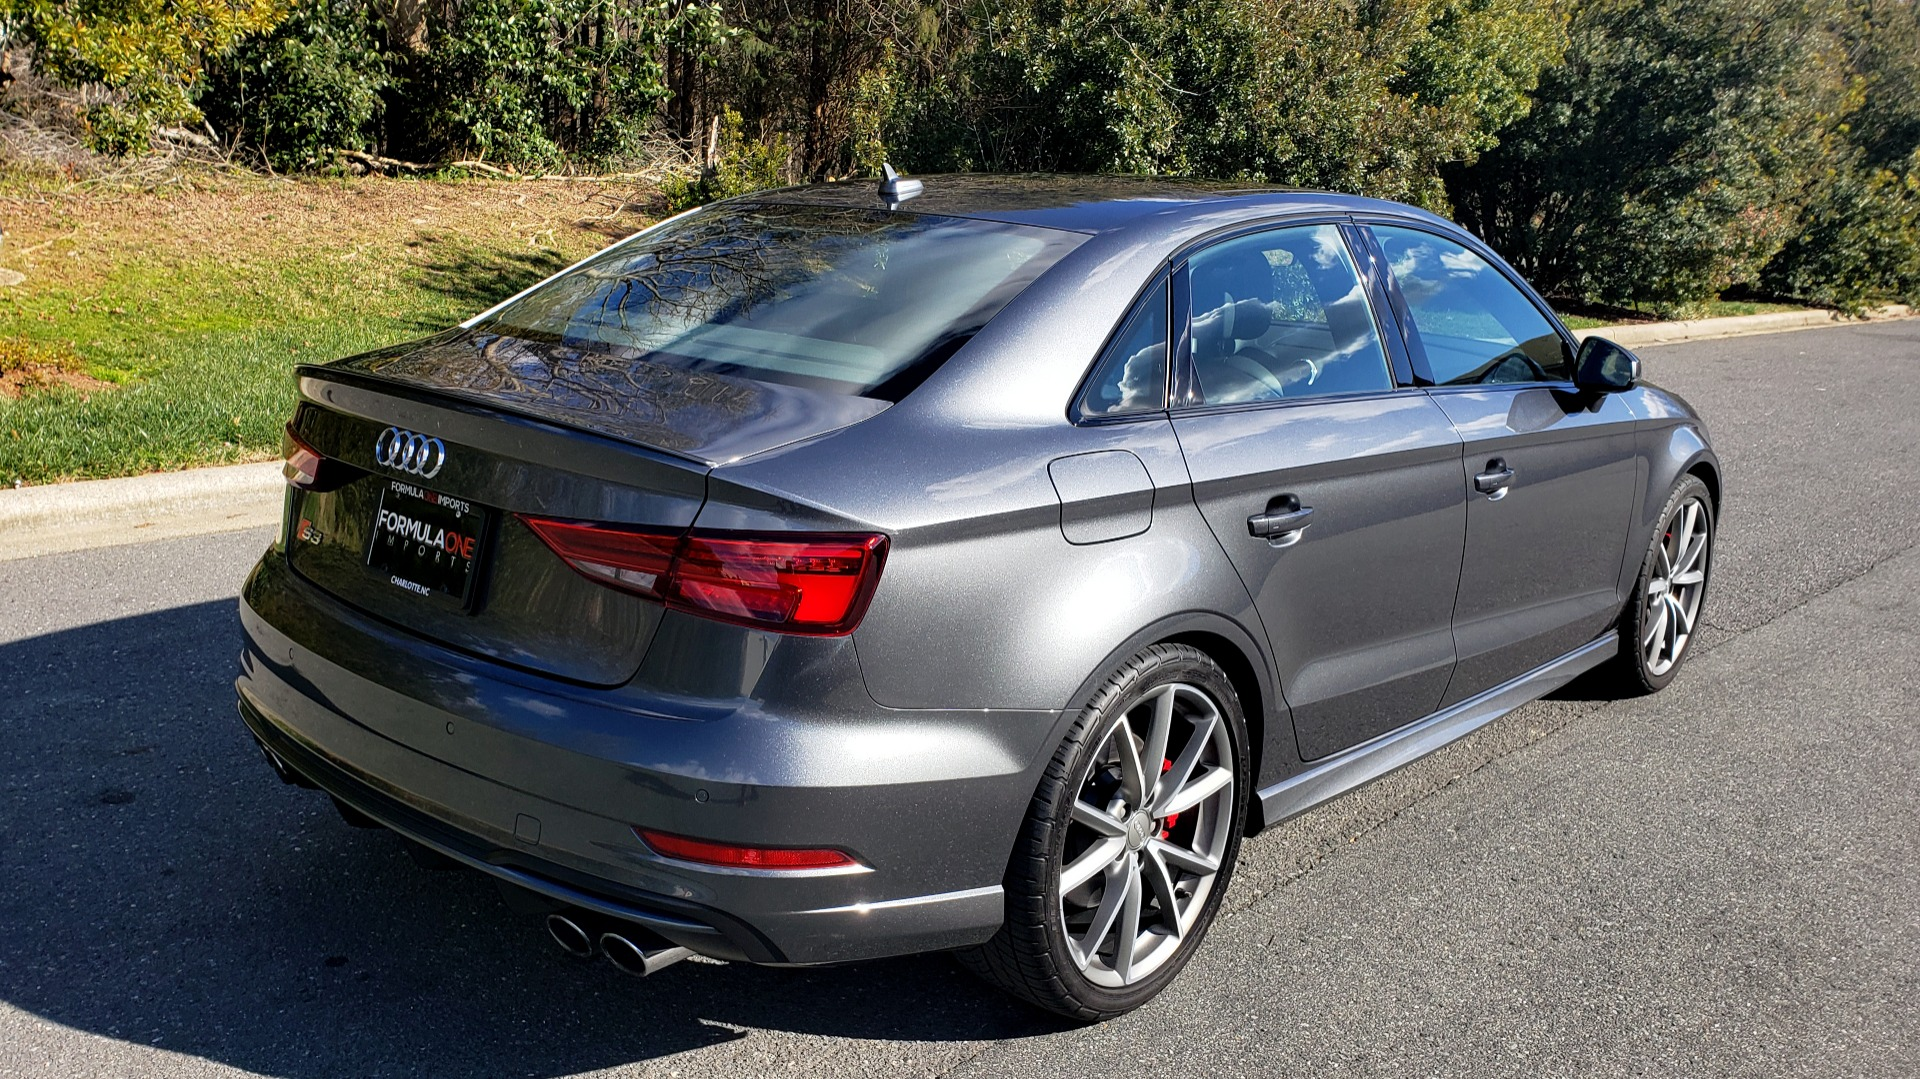 Used 2018 Audi S3 PREMIUM PLUS / TECH / NAV / BLACK OPTIC / S-SPORT / REARVIEW for sale $32,995 at Formula Imports in Charlotte NC 28227 6